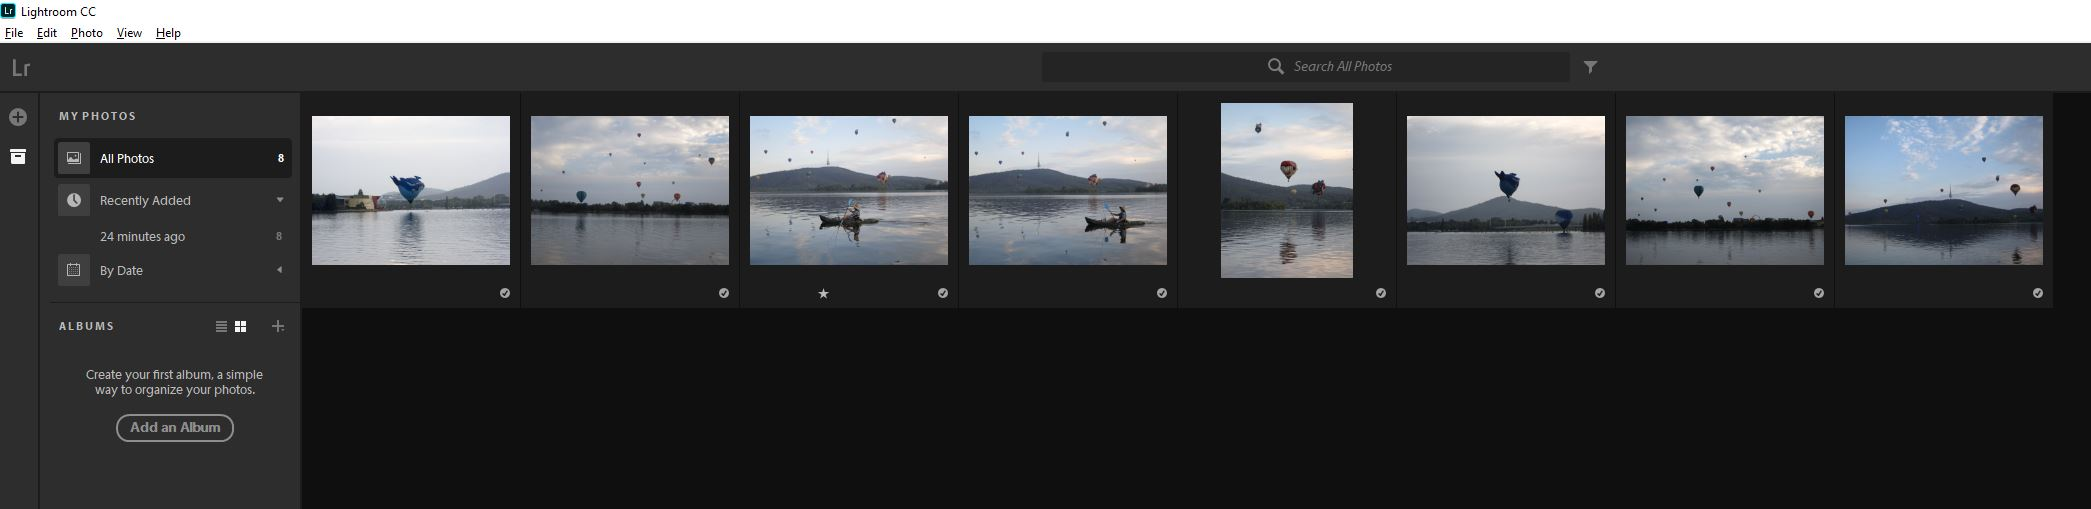 Lightroom cc interface